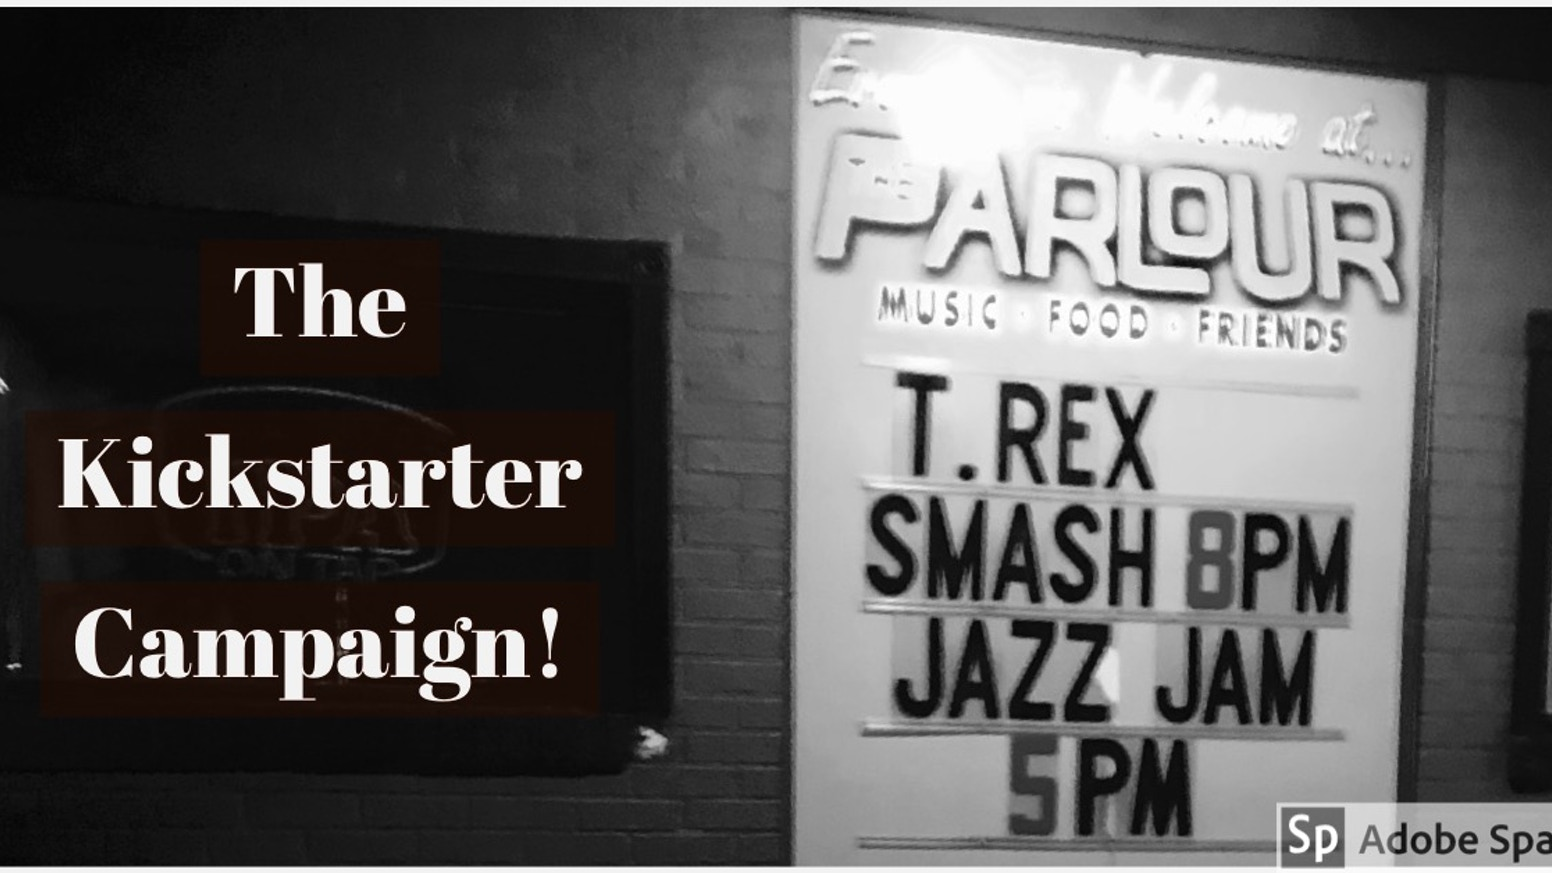 SMASH! BAM! We're putting together a three disc album of original jazz music with some of the best musicians around! We need your help!